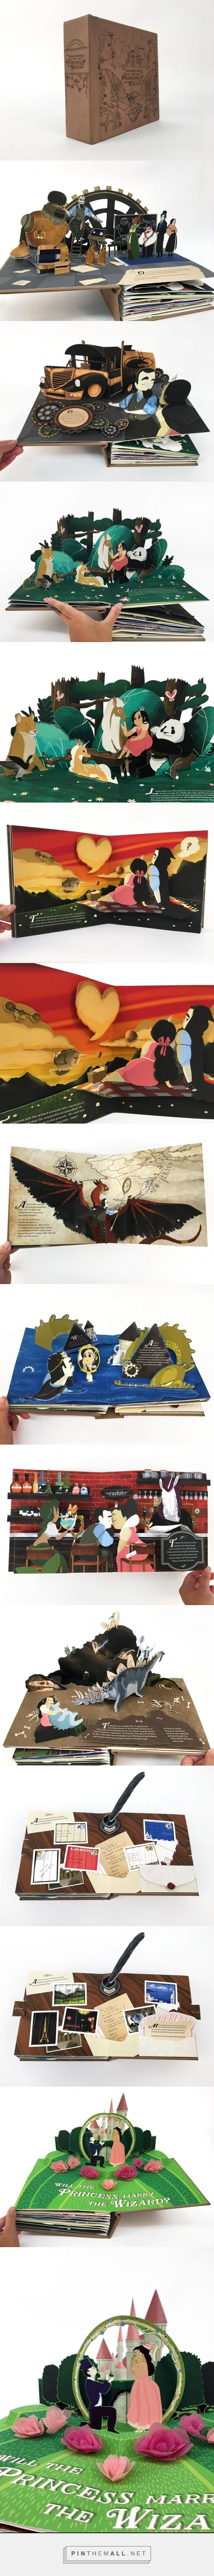 WEDDING PROPOSAL POP-UP BOOK:  The Adventures of the Princess & the Wizard CUSTOM POP-UP BOOK Custom designed and paper engineered pop-up book. 10 fully illustrated pop-up spreads